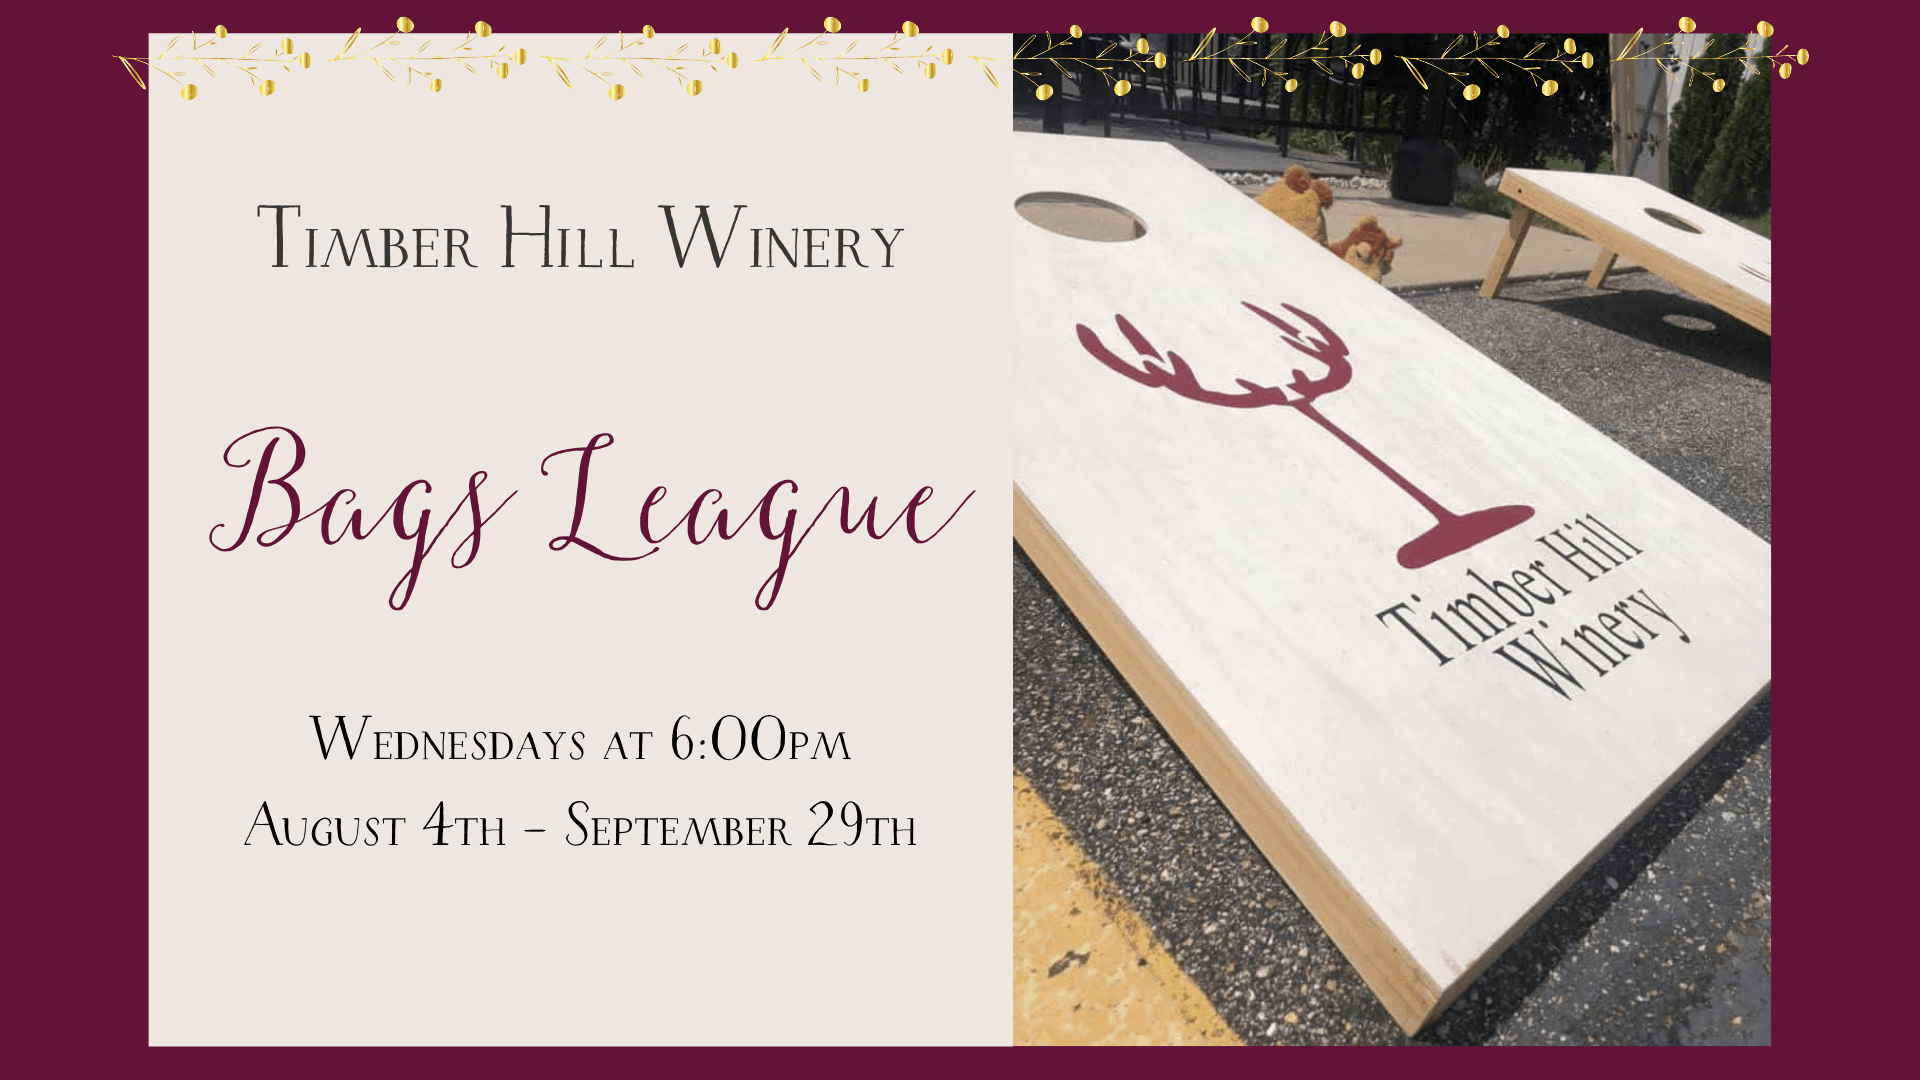 Bags League at Timber Hill Winery